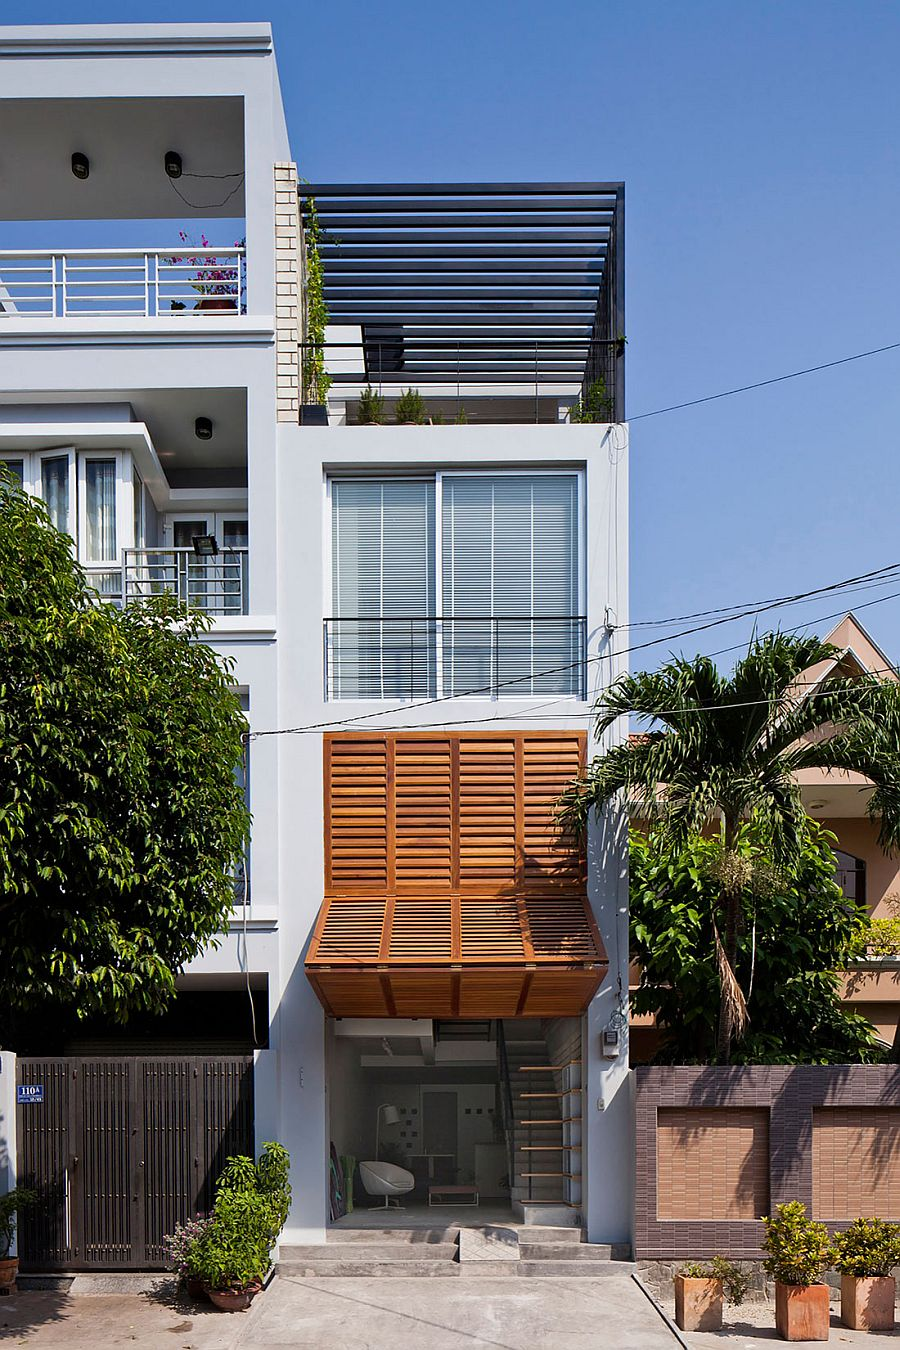 Ingenious townhouse in saigon is an enigmatic light for Townhouse architecture designs